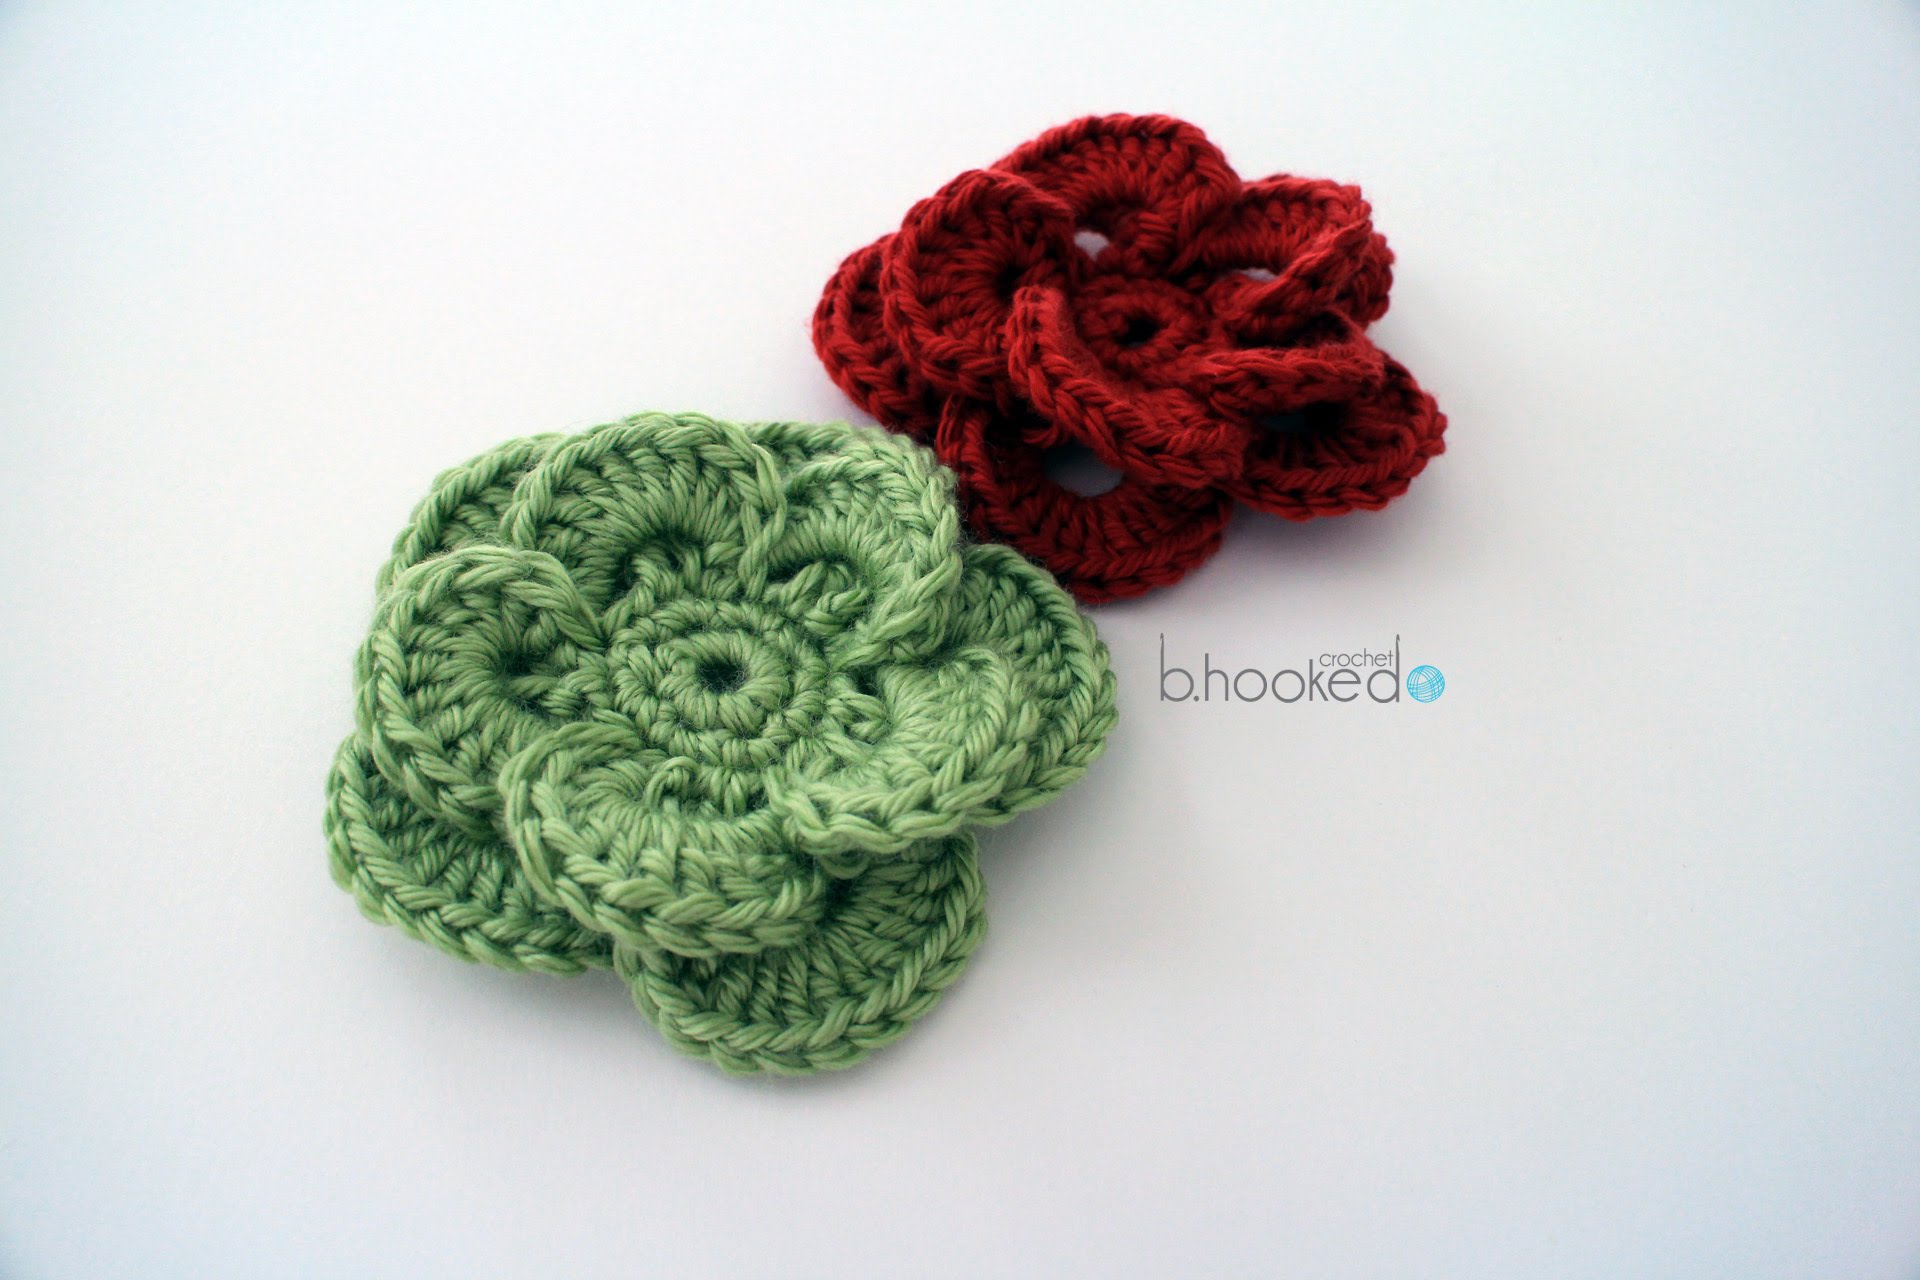 flower crochet pattern how to crochet a flower: crochet wagon wheel flower free crochet pattern -  youtube ZLWRUNU